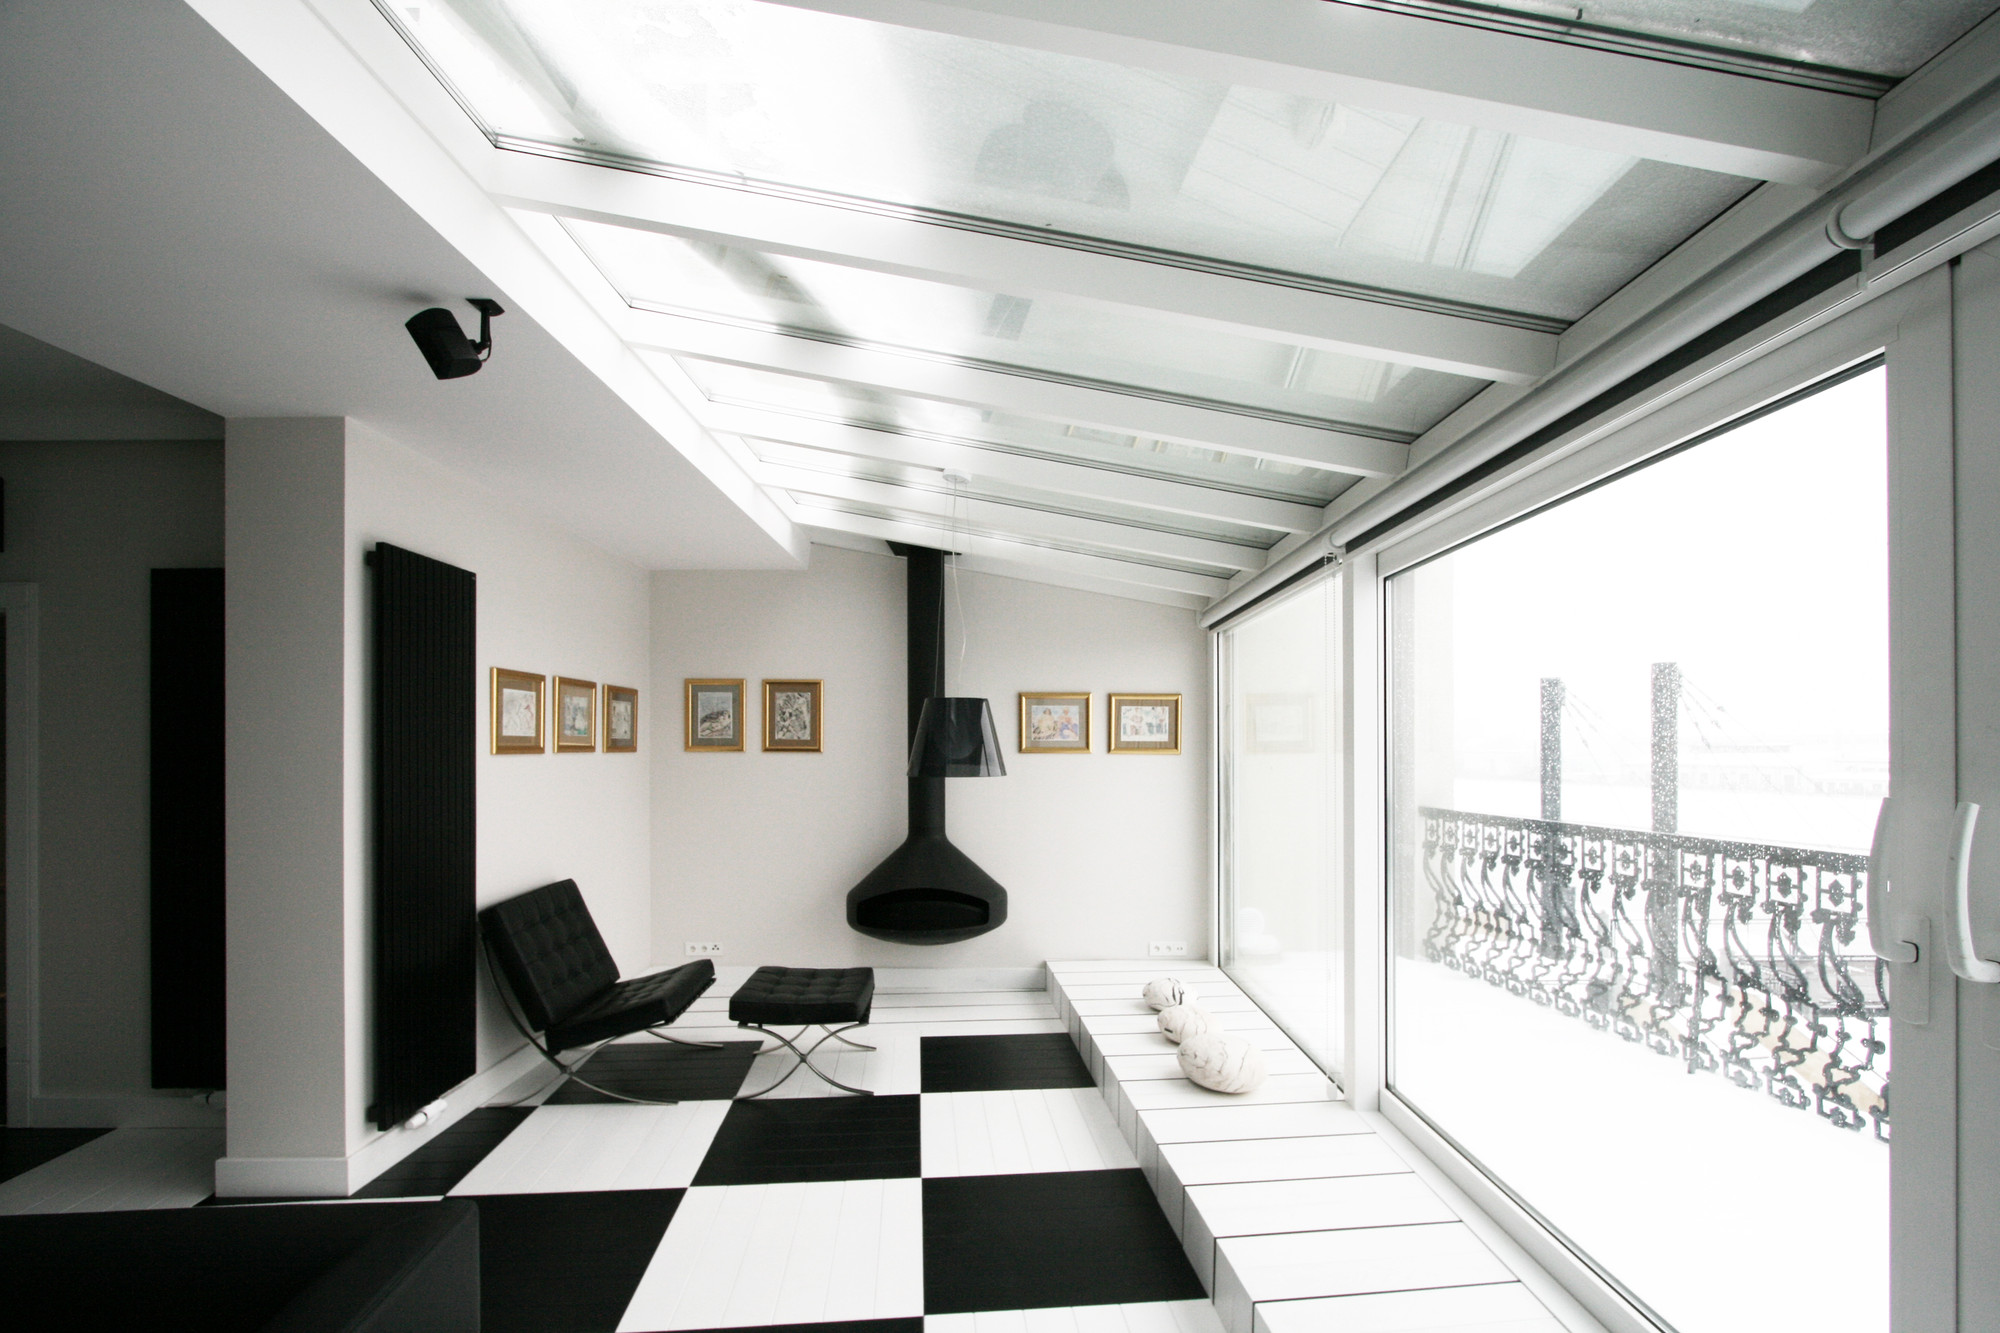 Pleasing Black And White Office Toya Design Archdaily Largest Home Design Picture Inspirations Pitcheantrous